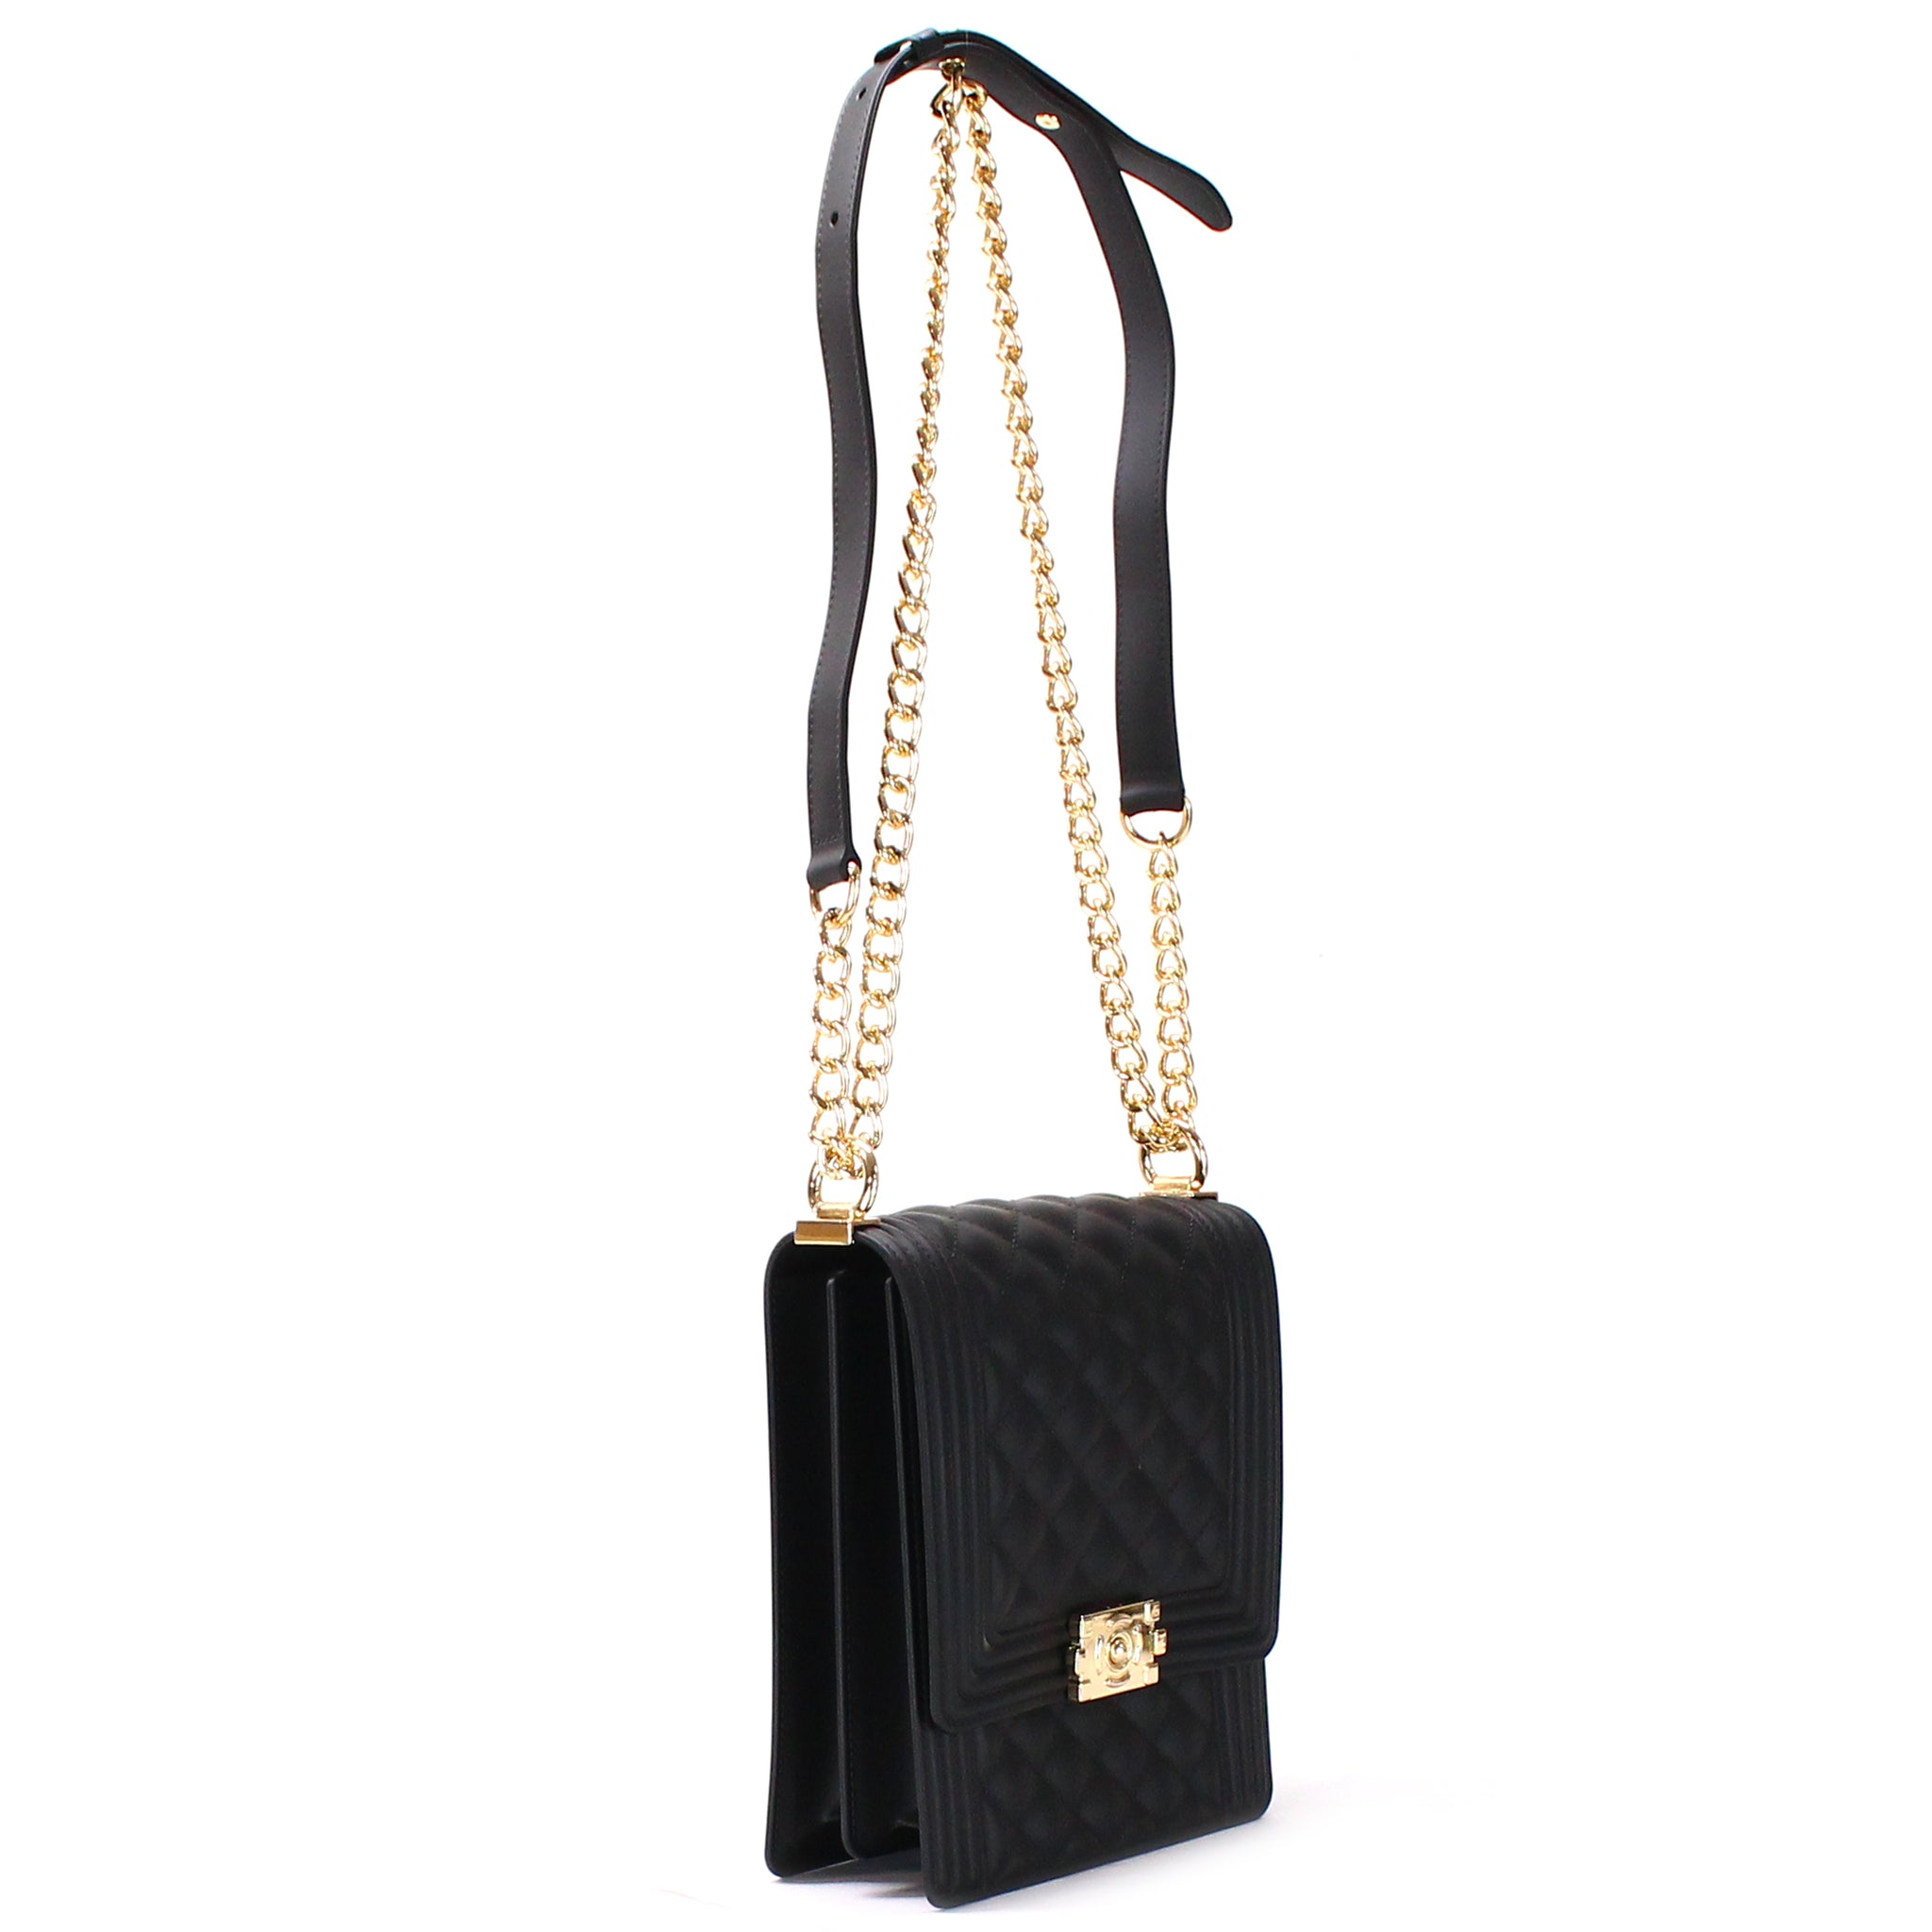 VERTICAL QUILTED SILICONE SHOULDER BAG WITH CHAIN STRAP - Jenuine Handbags